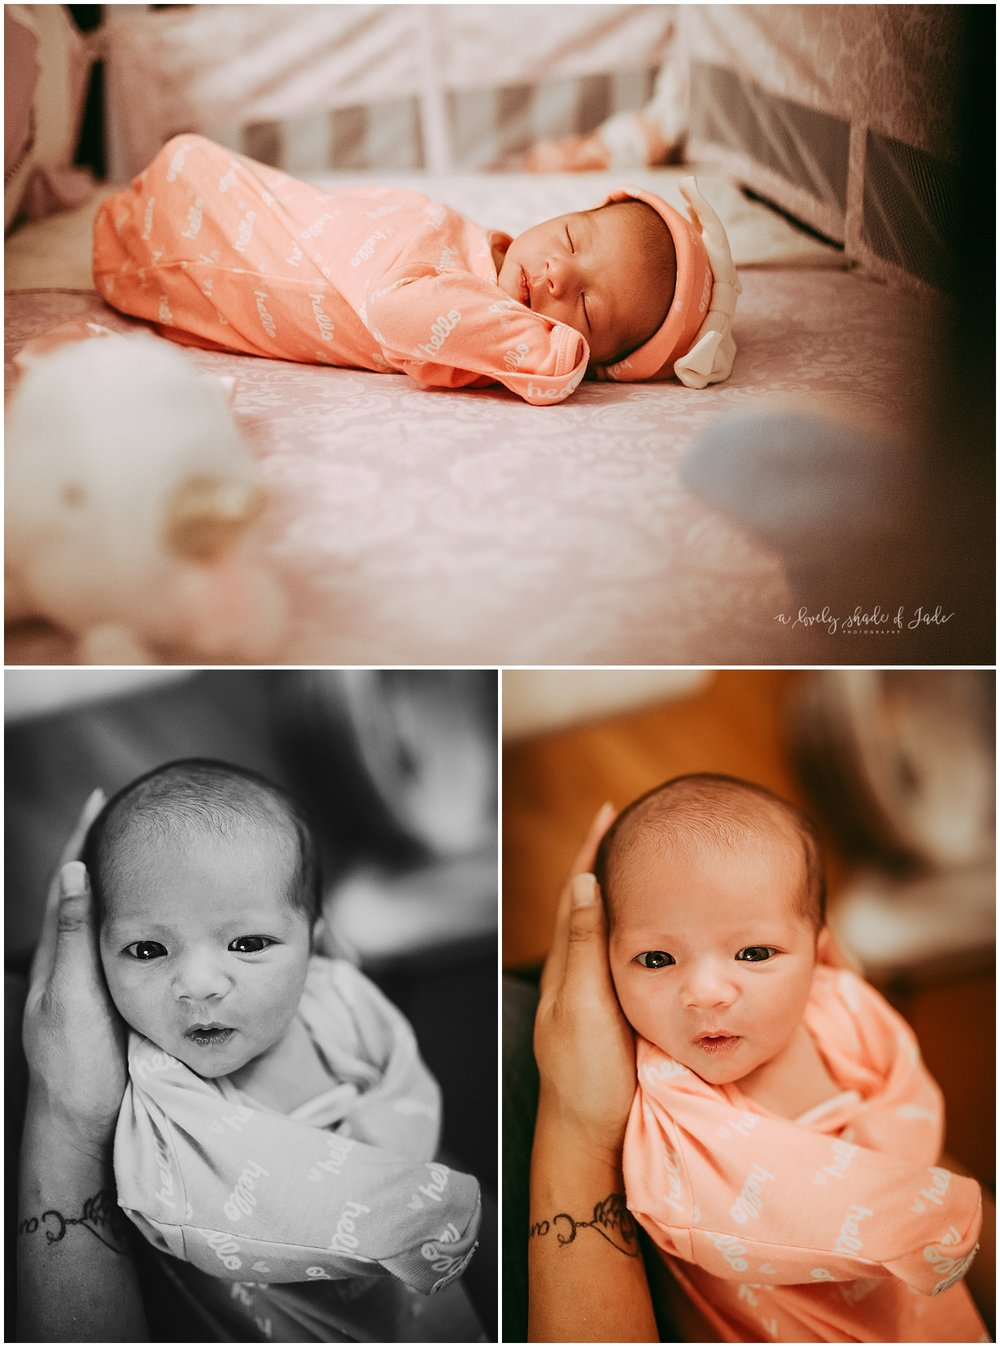 Kensington_Lifestyle_Newborn_NJ_Photographer_0006.jpg